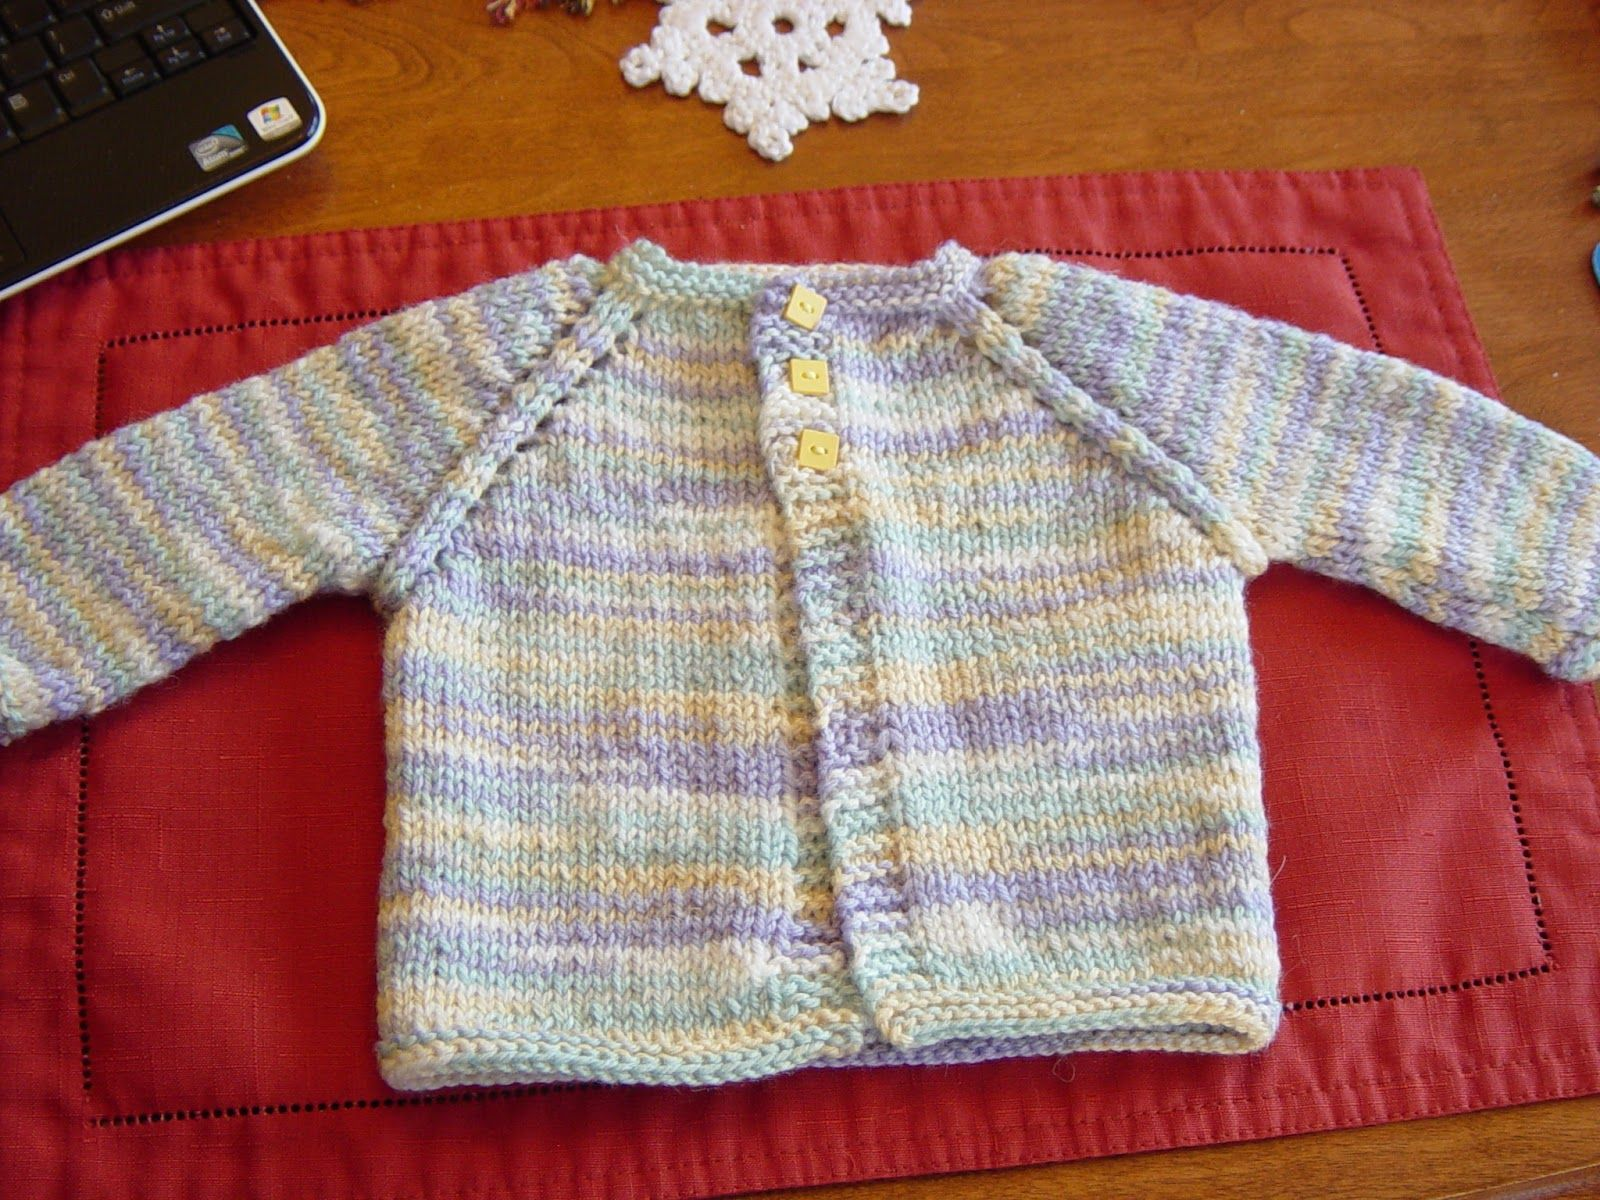 51 Best Strik images in 2019 | Knitting, Baby knitting, Baby